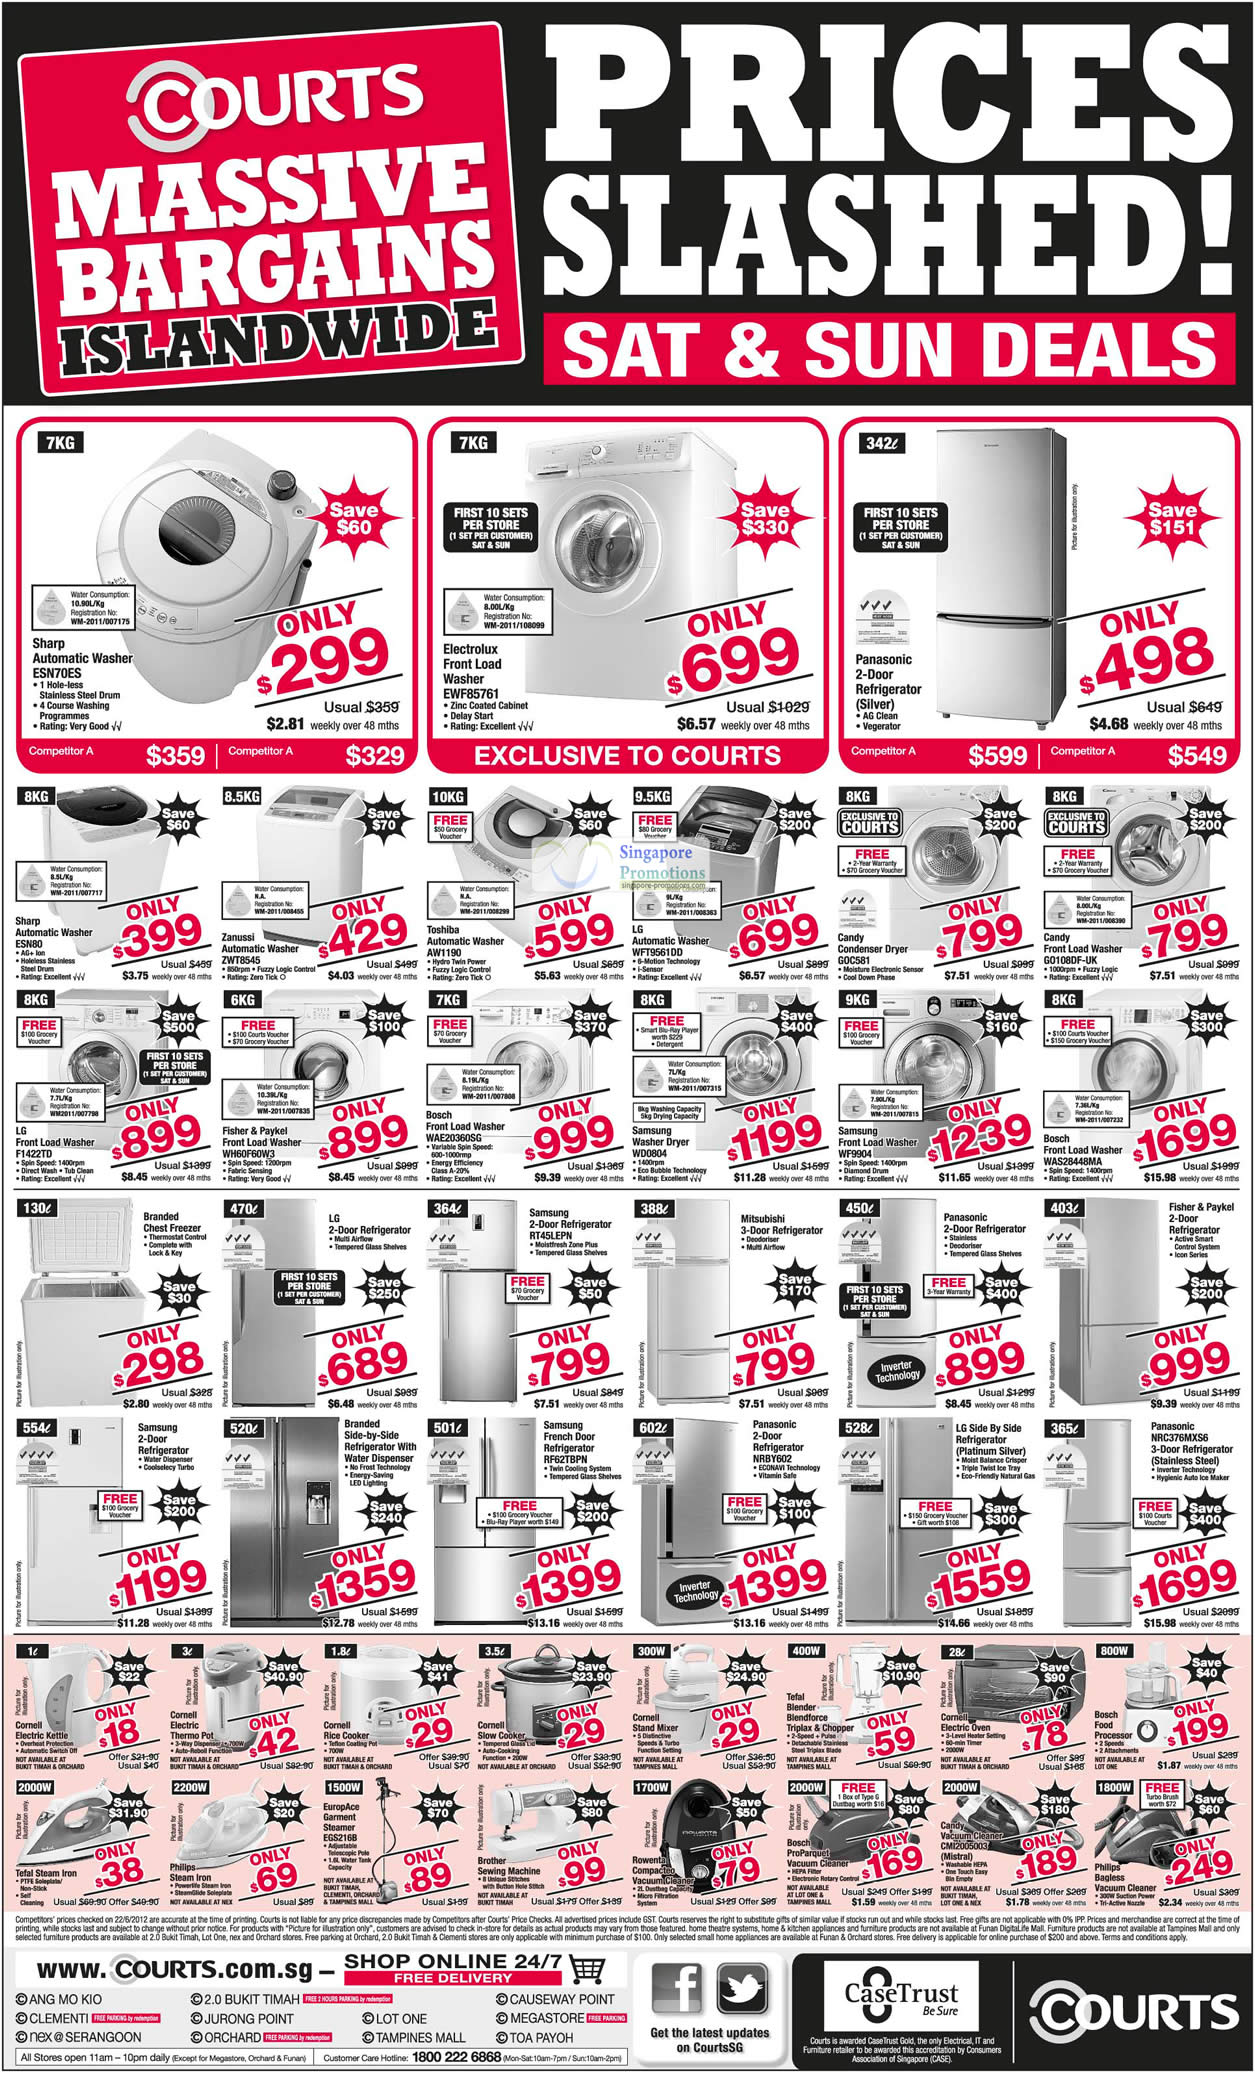 Washers, Dryers, Fridges, Sharp, Electrolux, Toshiba, Candy, Samsung, LG, Europace, Bosch